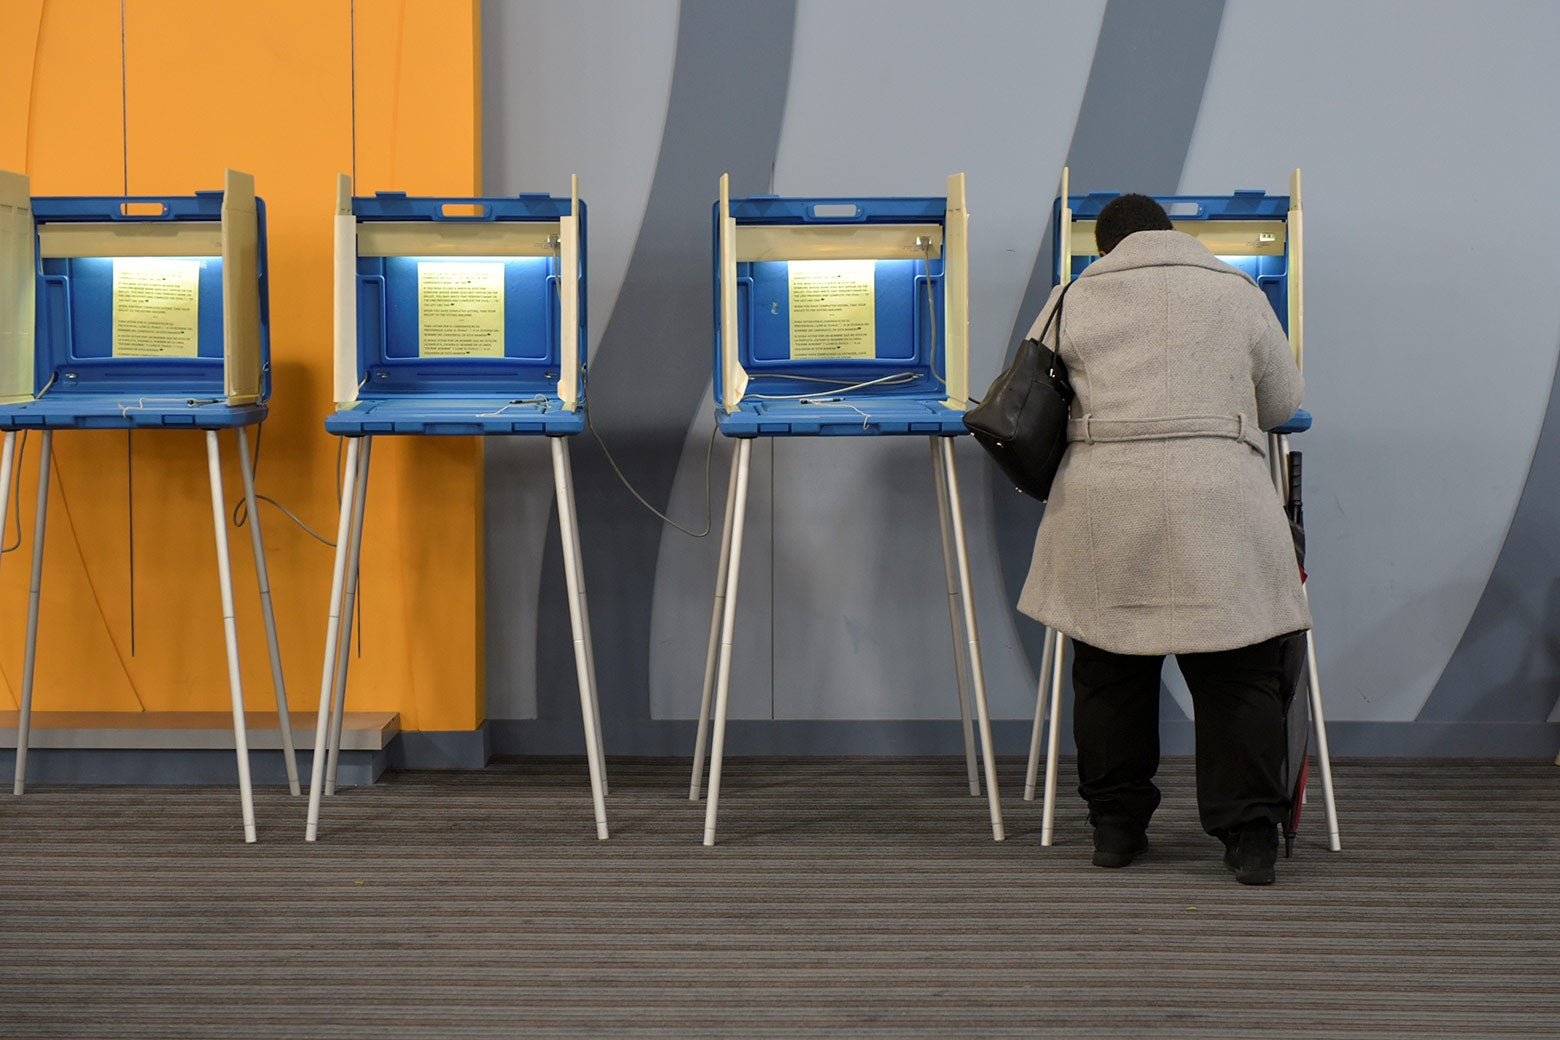 A woman using a voting machine.